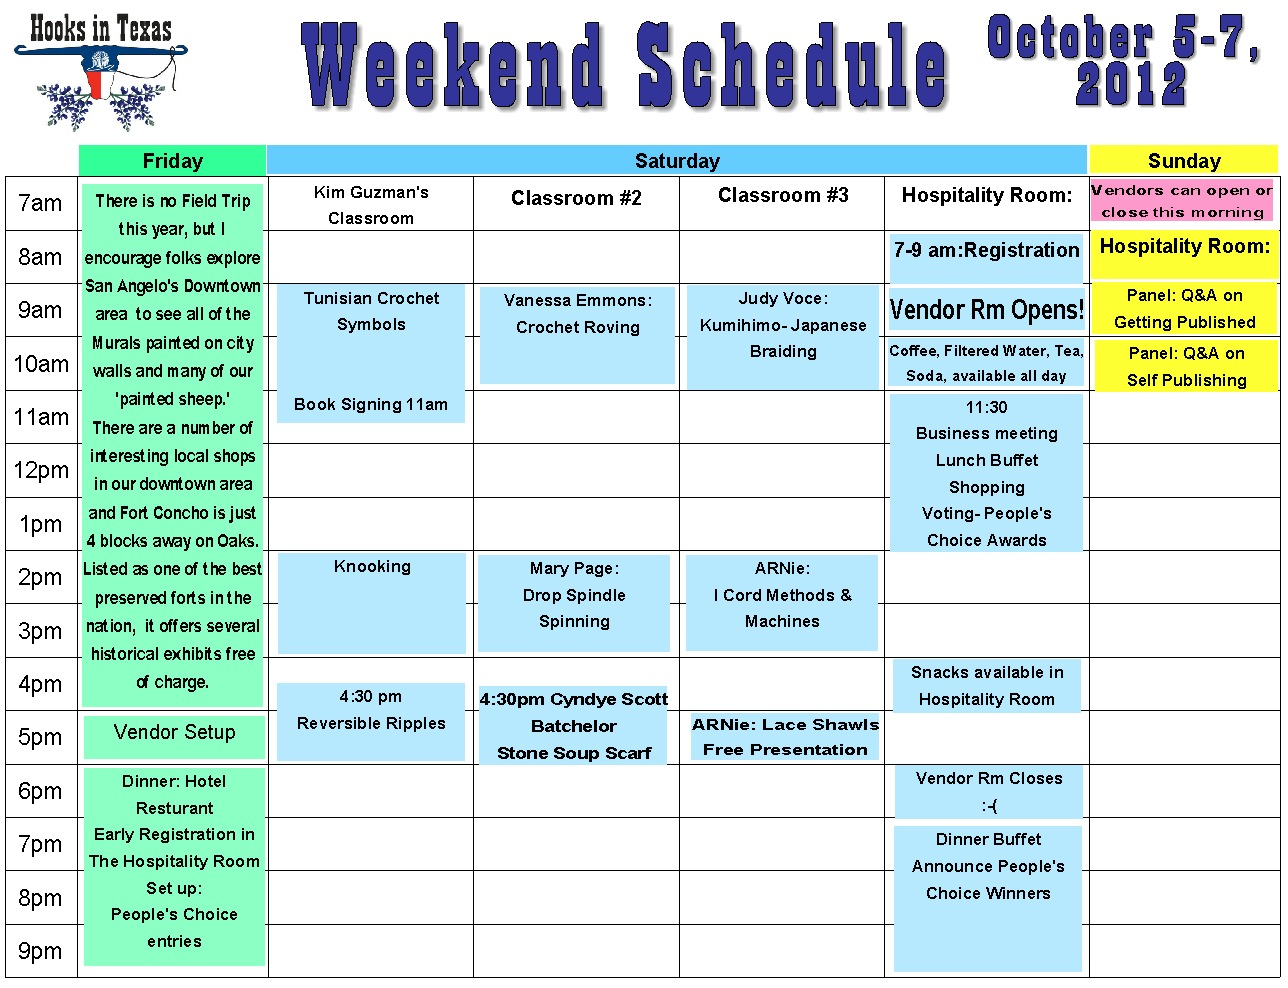 Shift Rota Template weekend schedule calendar 2016 best photos – Weekend Schedule Template